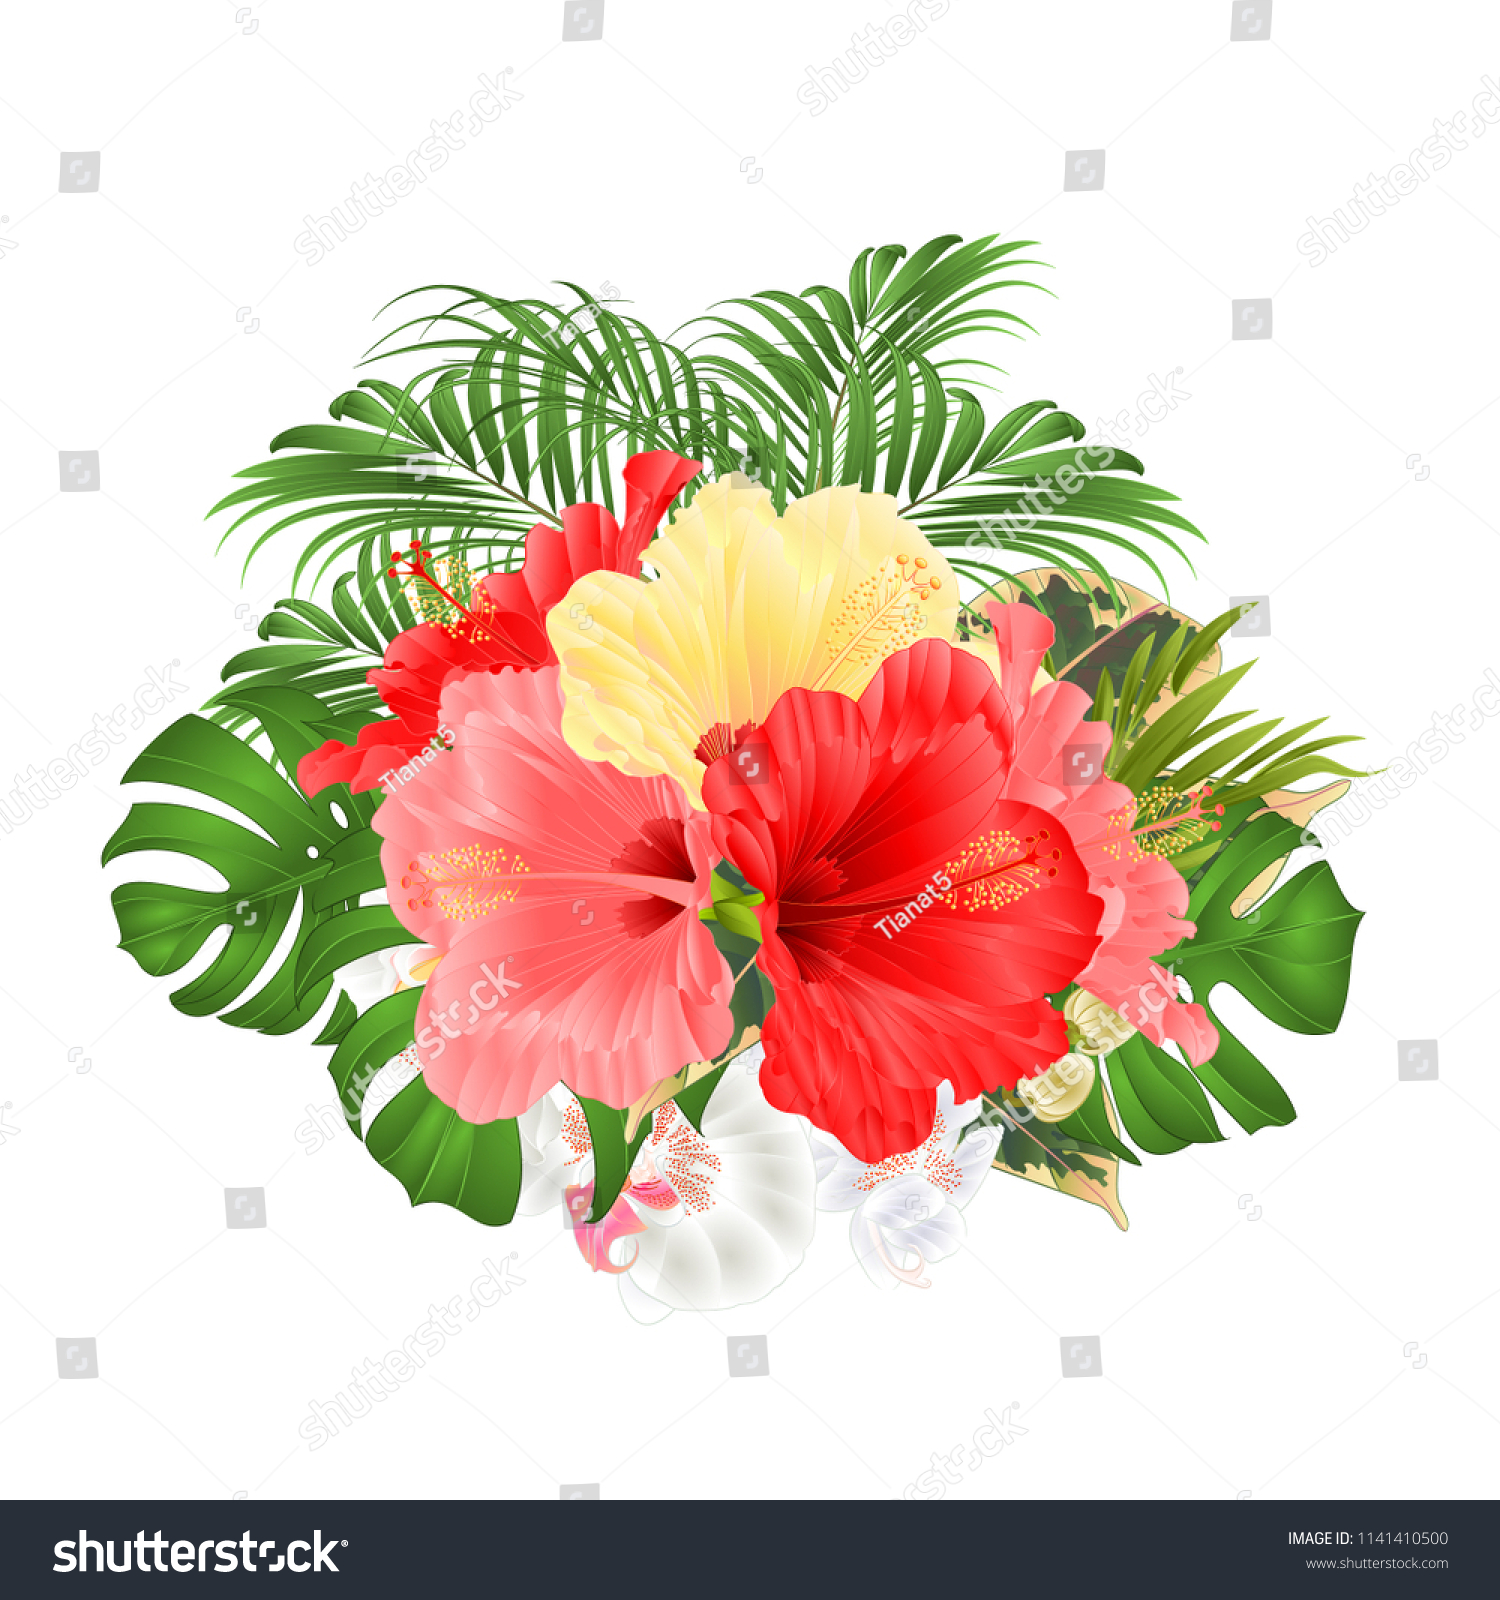 Bouquet Tropical Flowers Floral Arrangement Red Stock Vector Royalty Free 1141410500